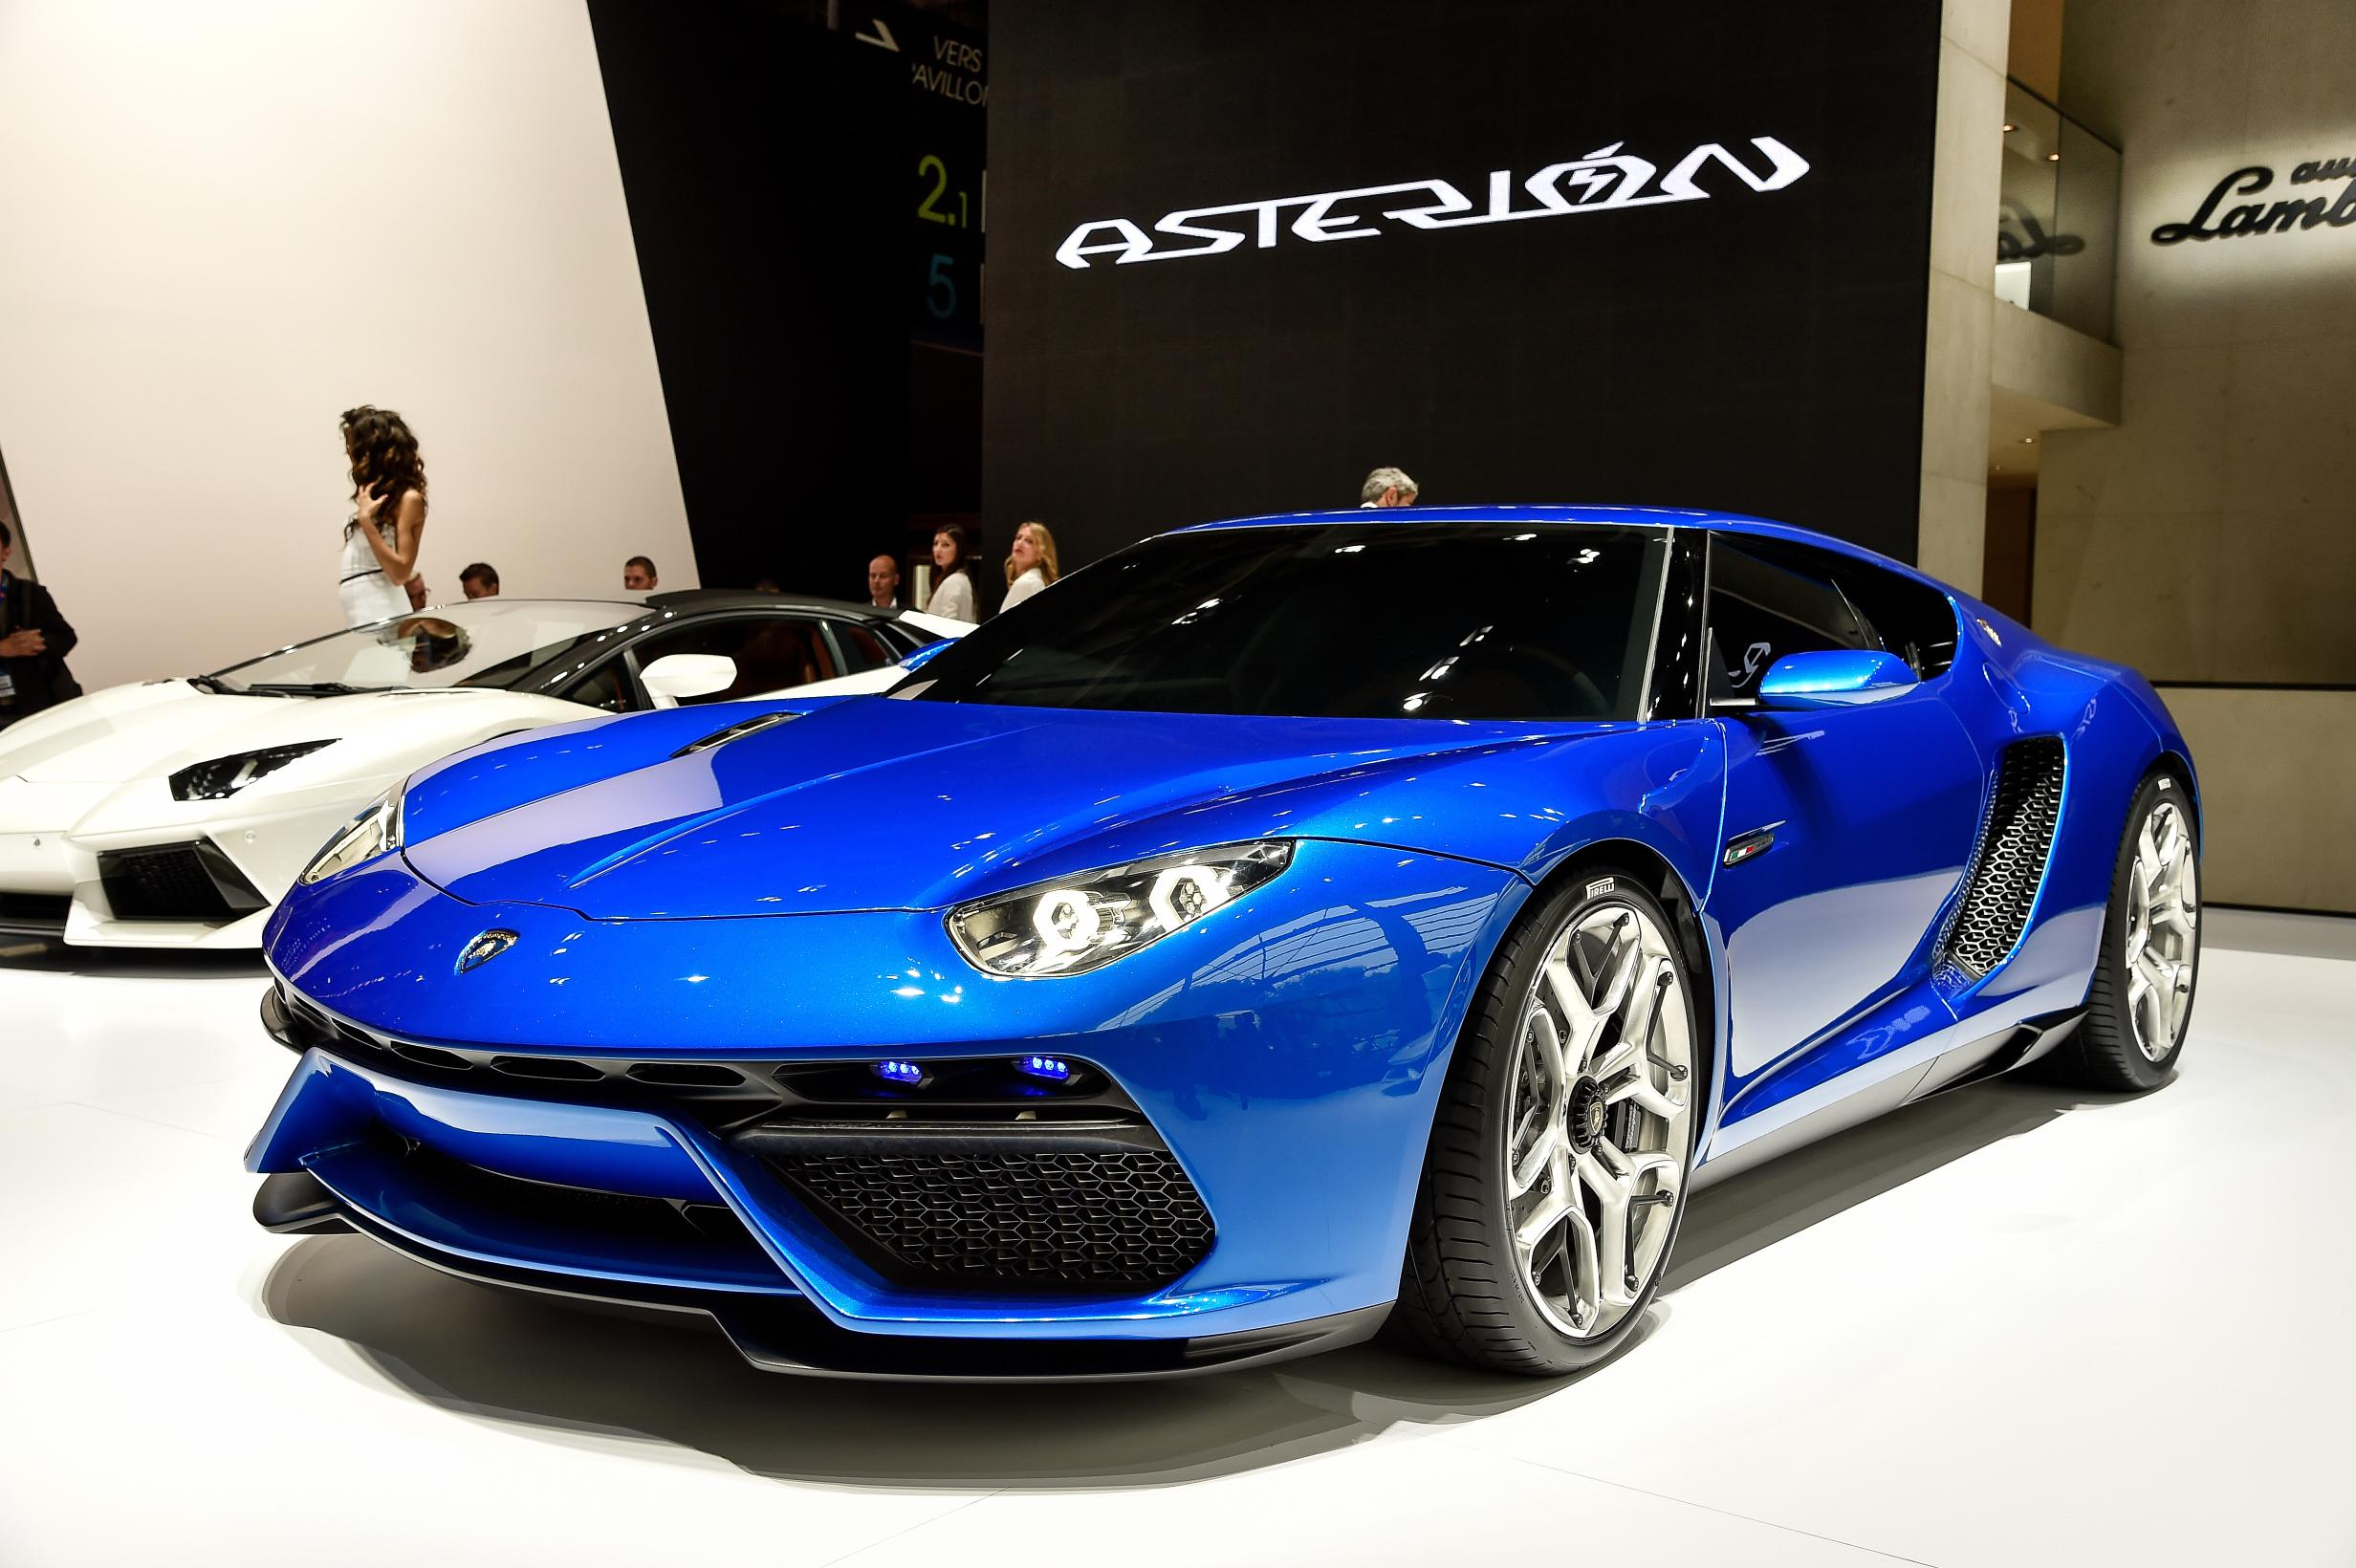 Lamborghini Asterion LPI 910-4 HD Wallpapers